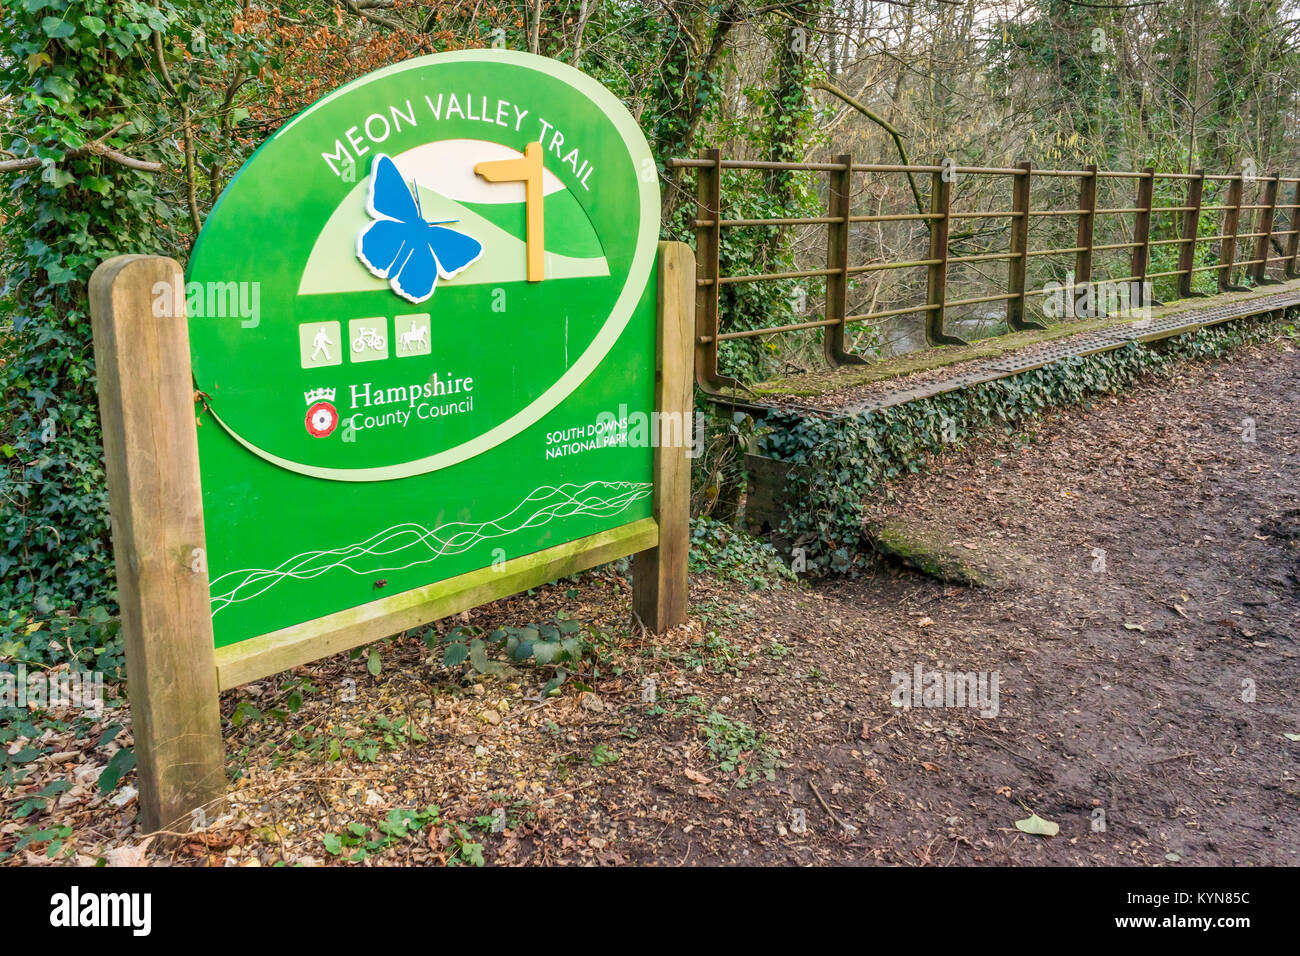 Green Meon Valley Trail sign near Wickham in Hampshire, England, UK - Stock Image